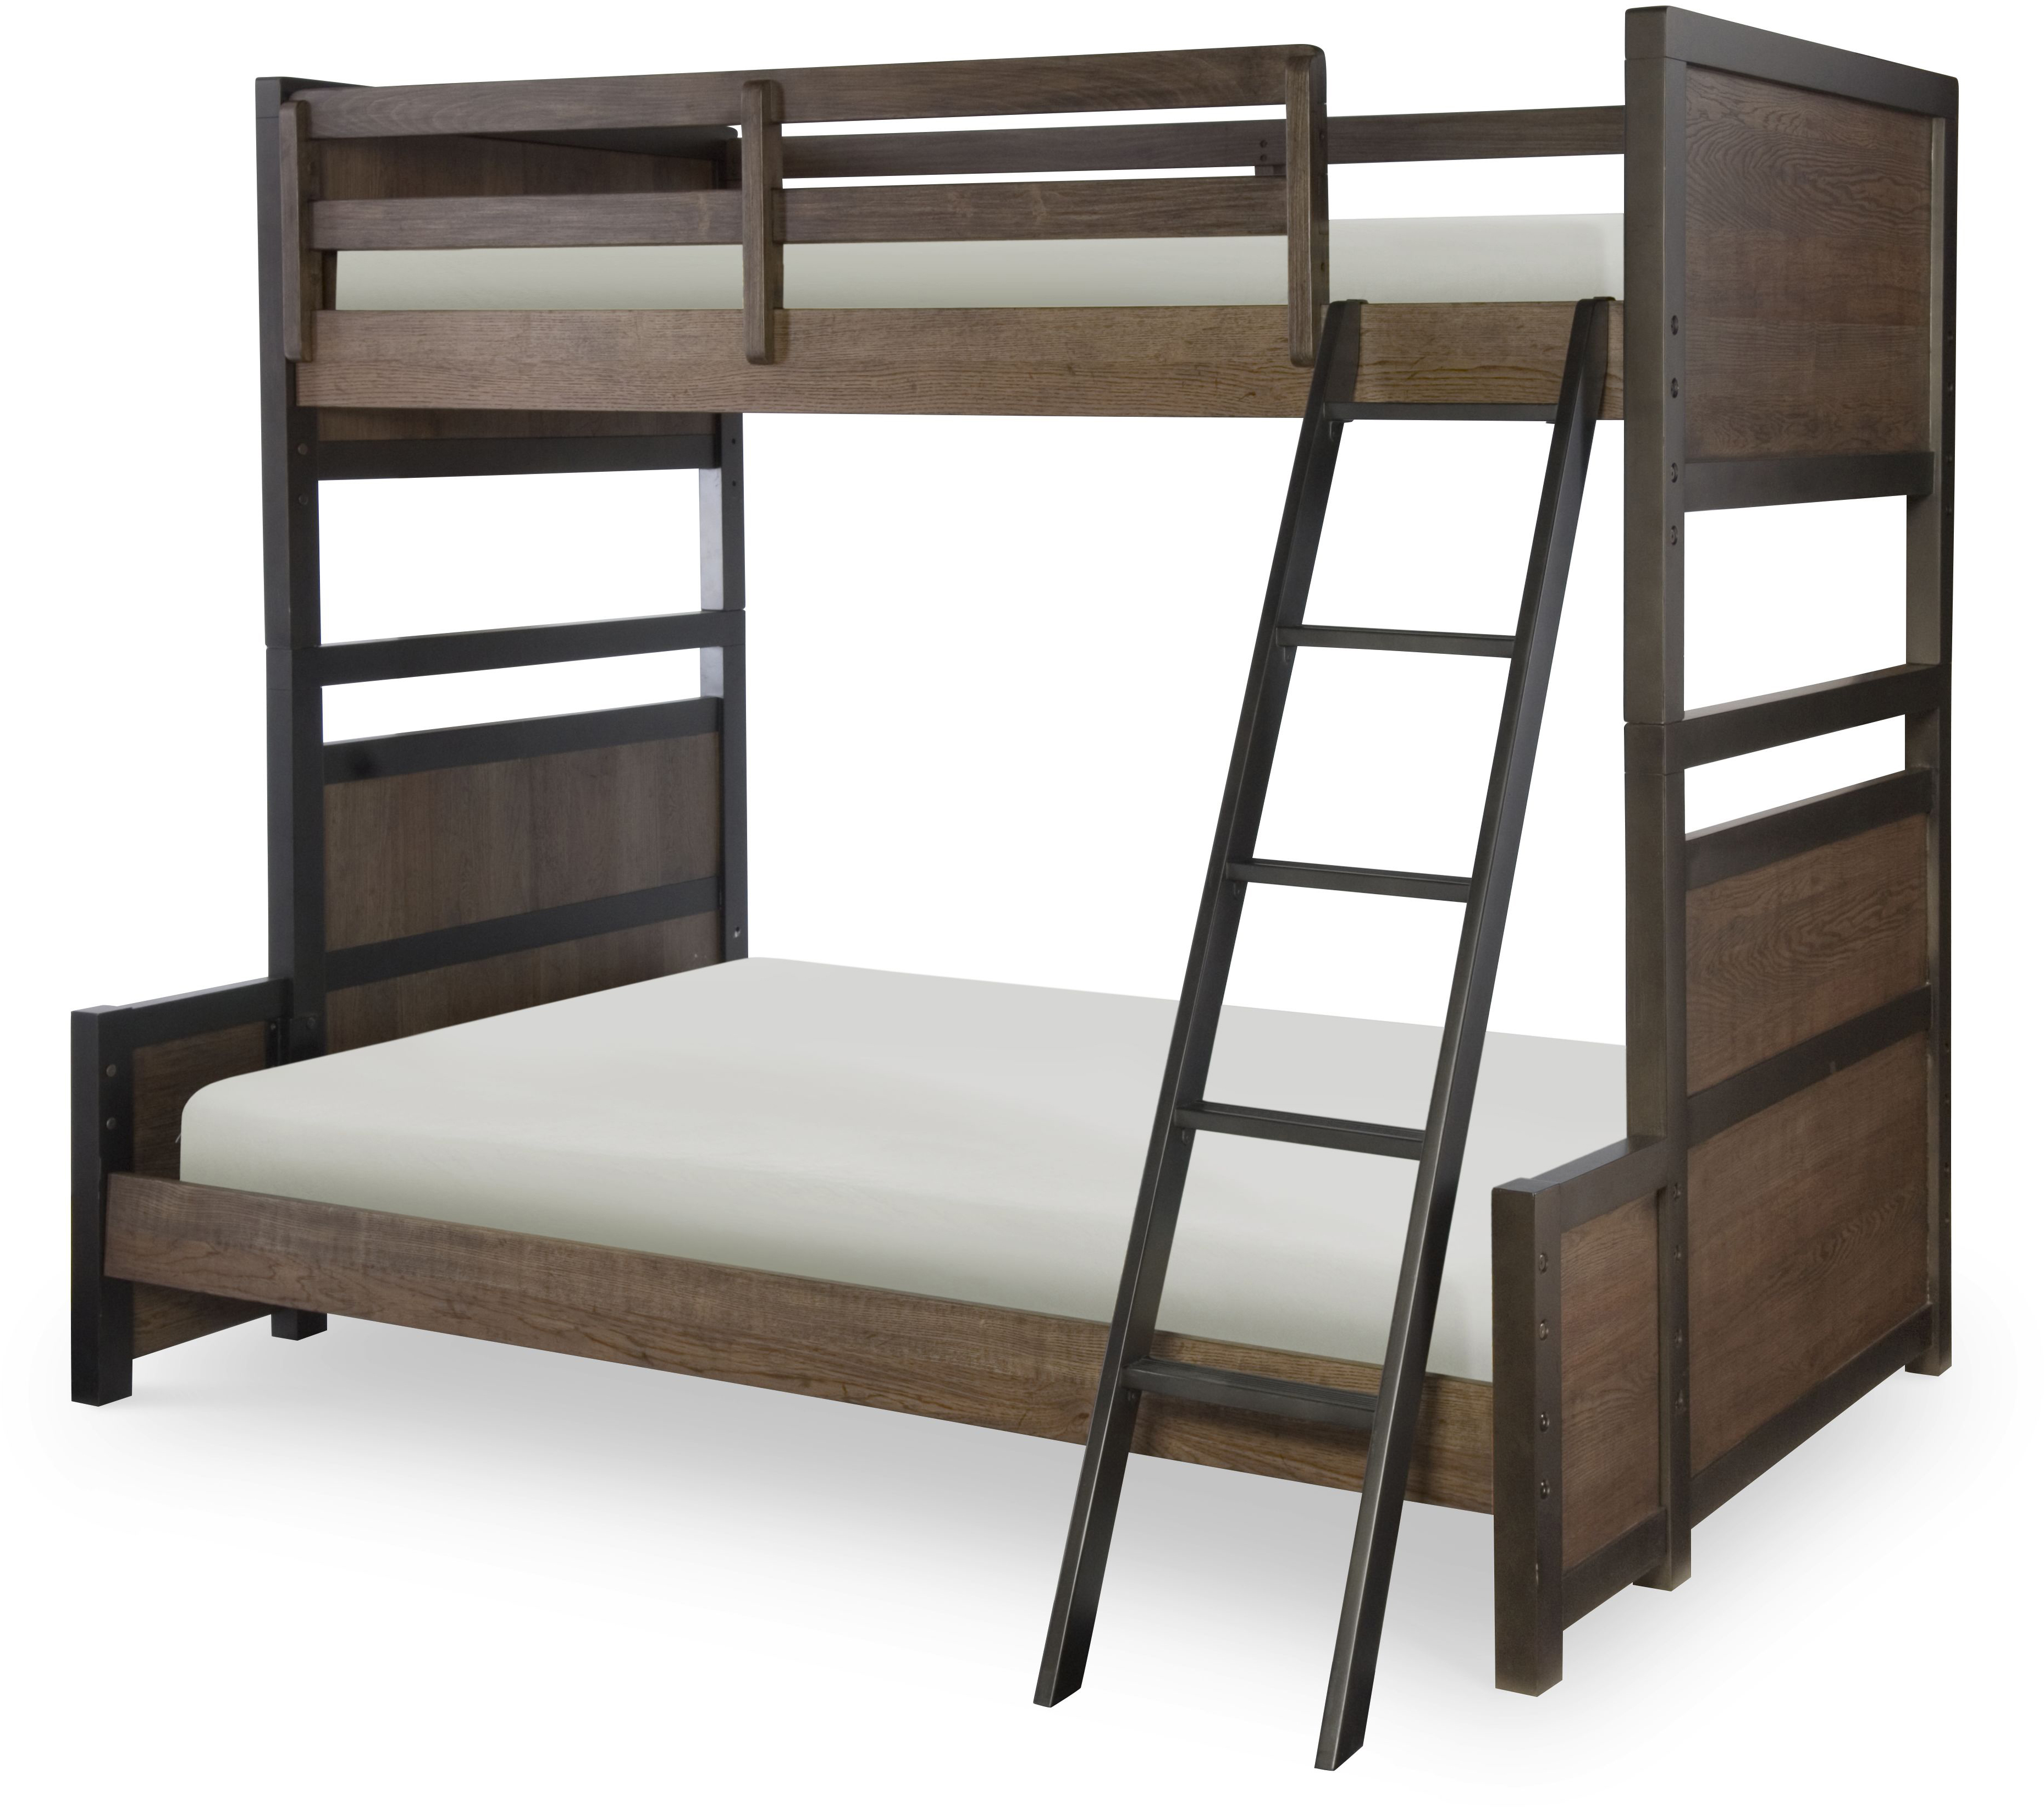 Legacy Classic Kids Fulton County Twin Over Full Bunk Bed - Item Number: 5900-8140K